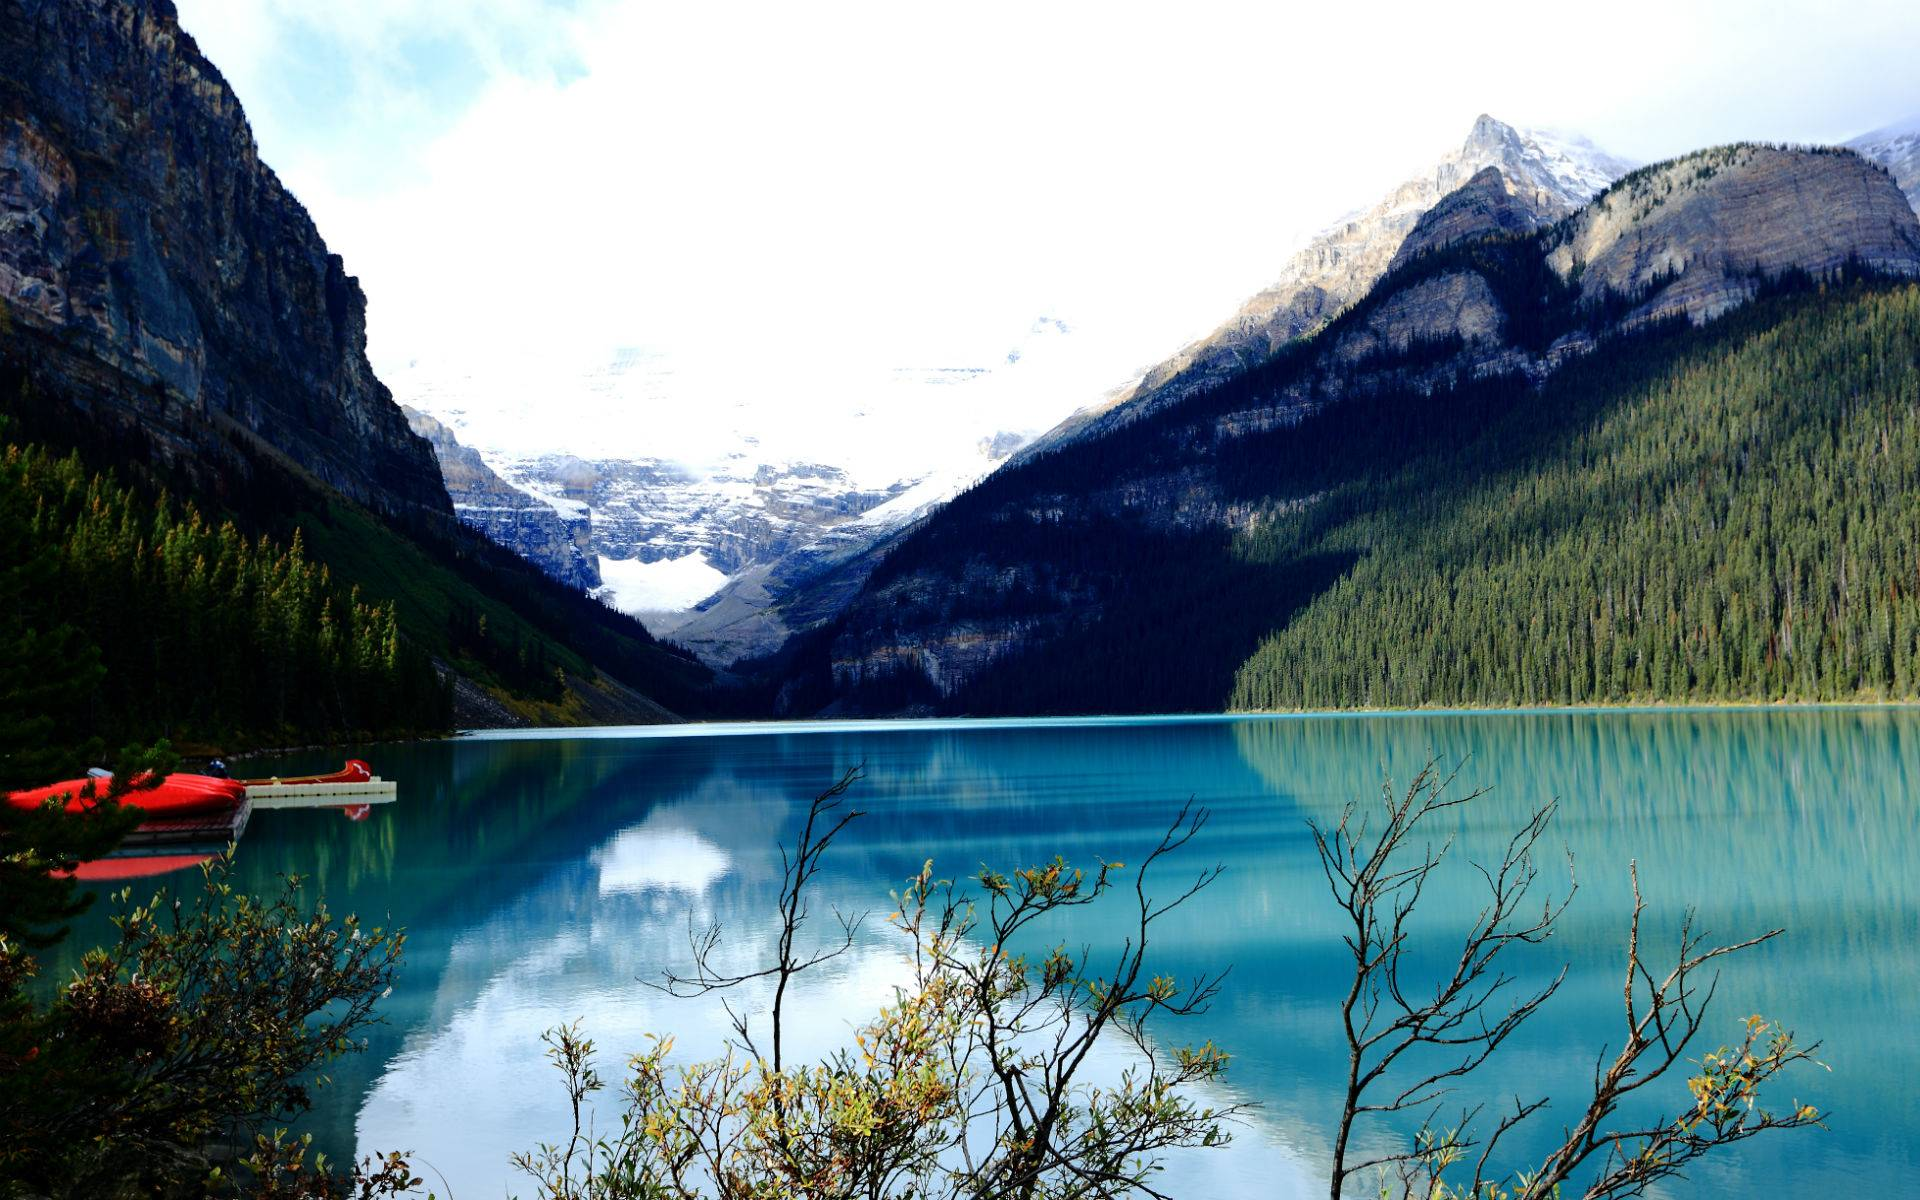 4-Day Rockies Mountains Tour from Calgary: Jasper, Banff, Sulphur Mountain, Columbia Icefield